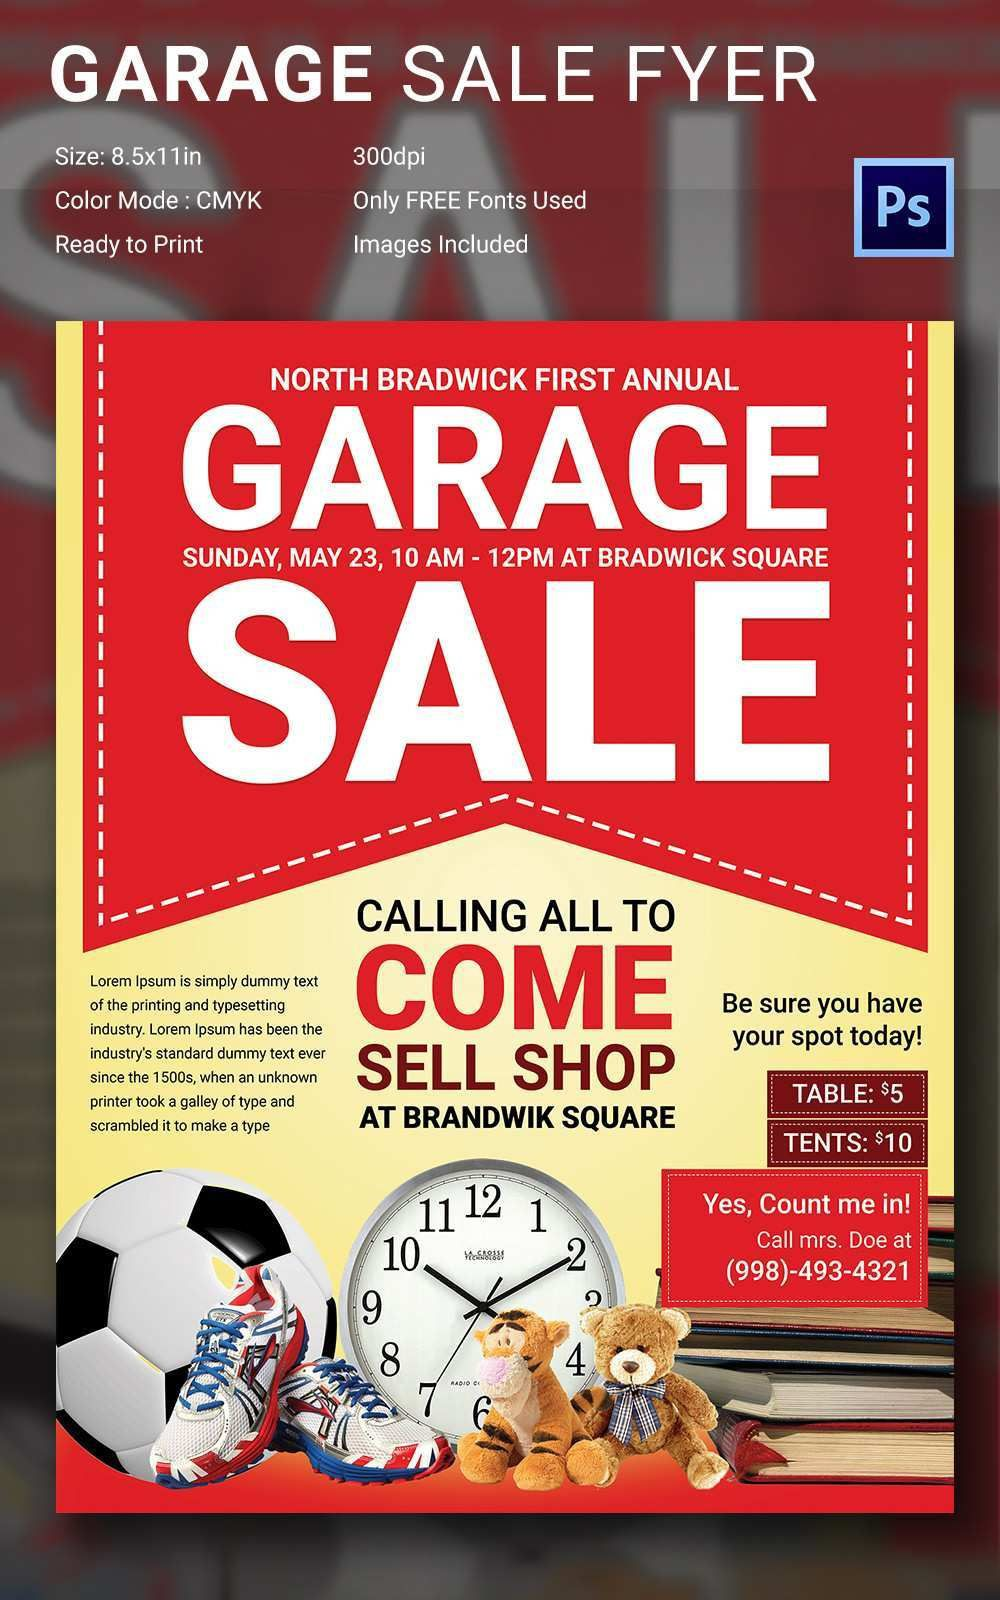 000 Awful Yard Sale Flyer Template Free Picture  Community GarageFull